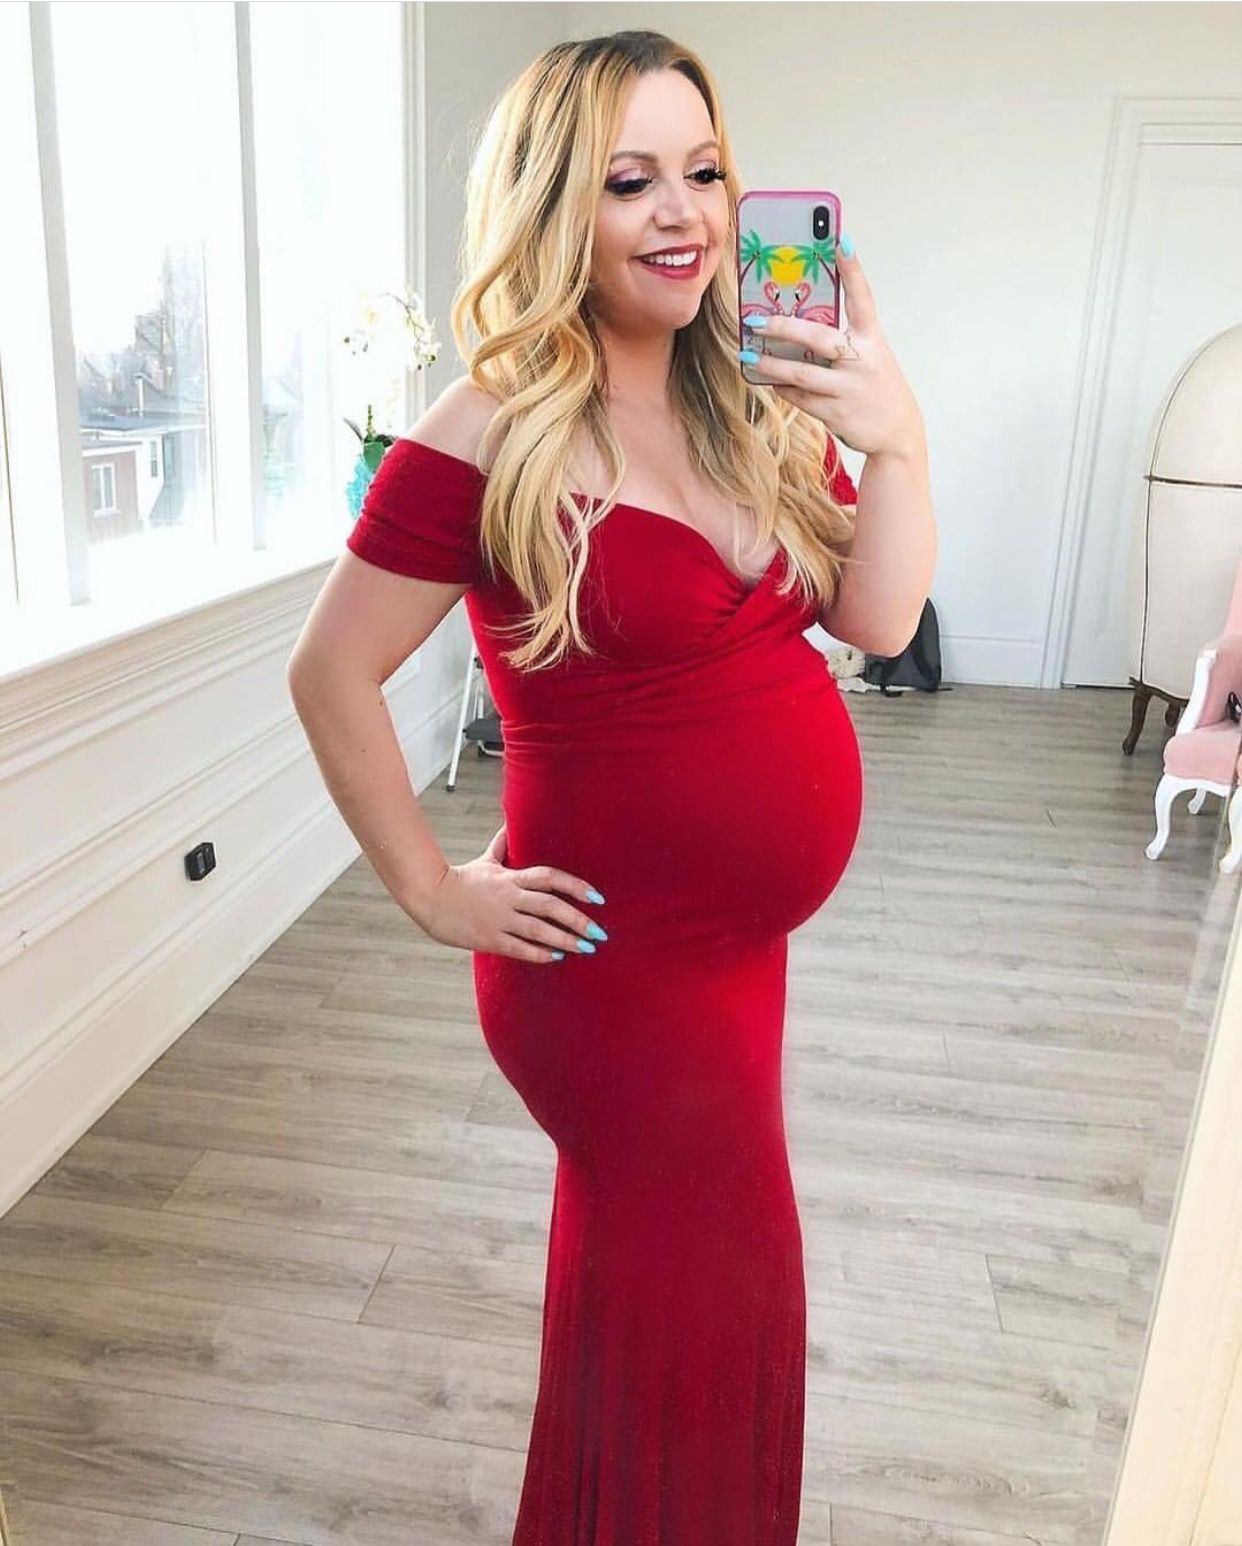 c02bb2c2a42 Pretty mama showing off her  SexyMamaMaternity gown pre maternity photo  shoot! This red matenrity